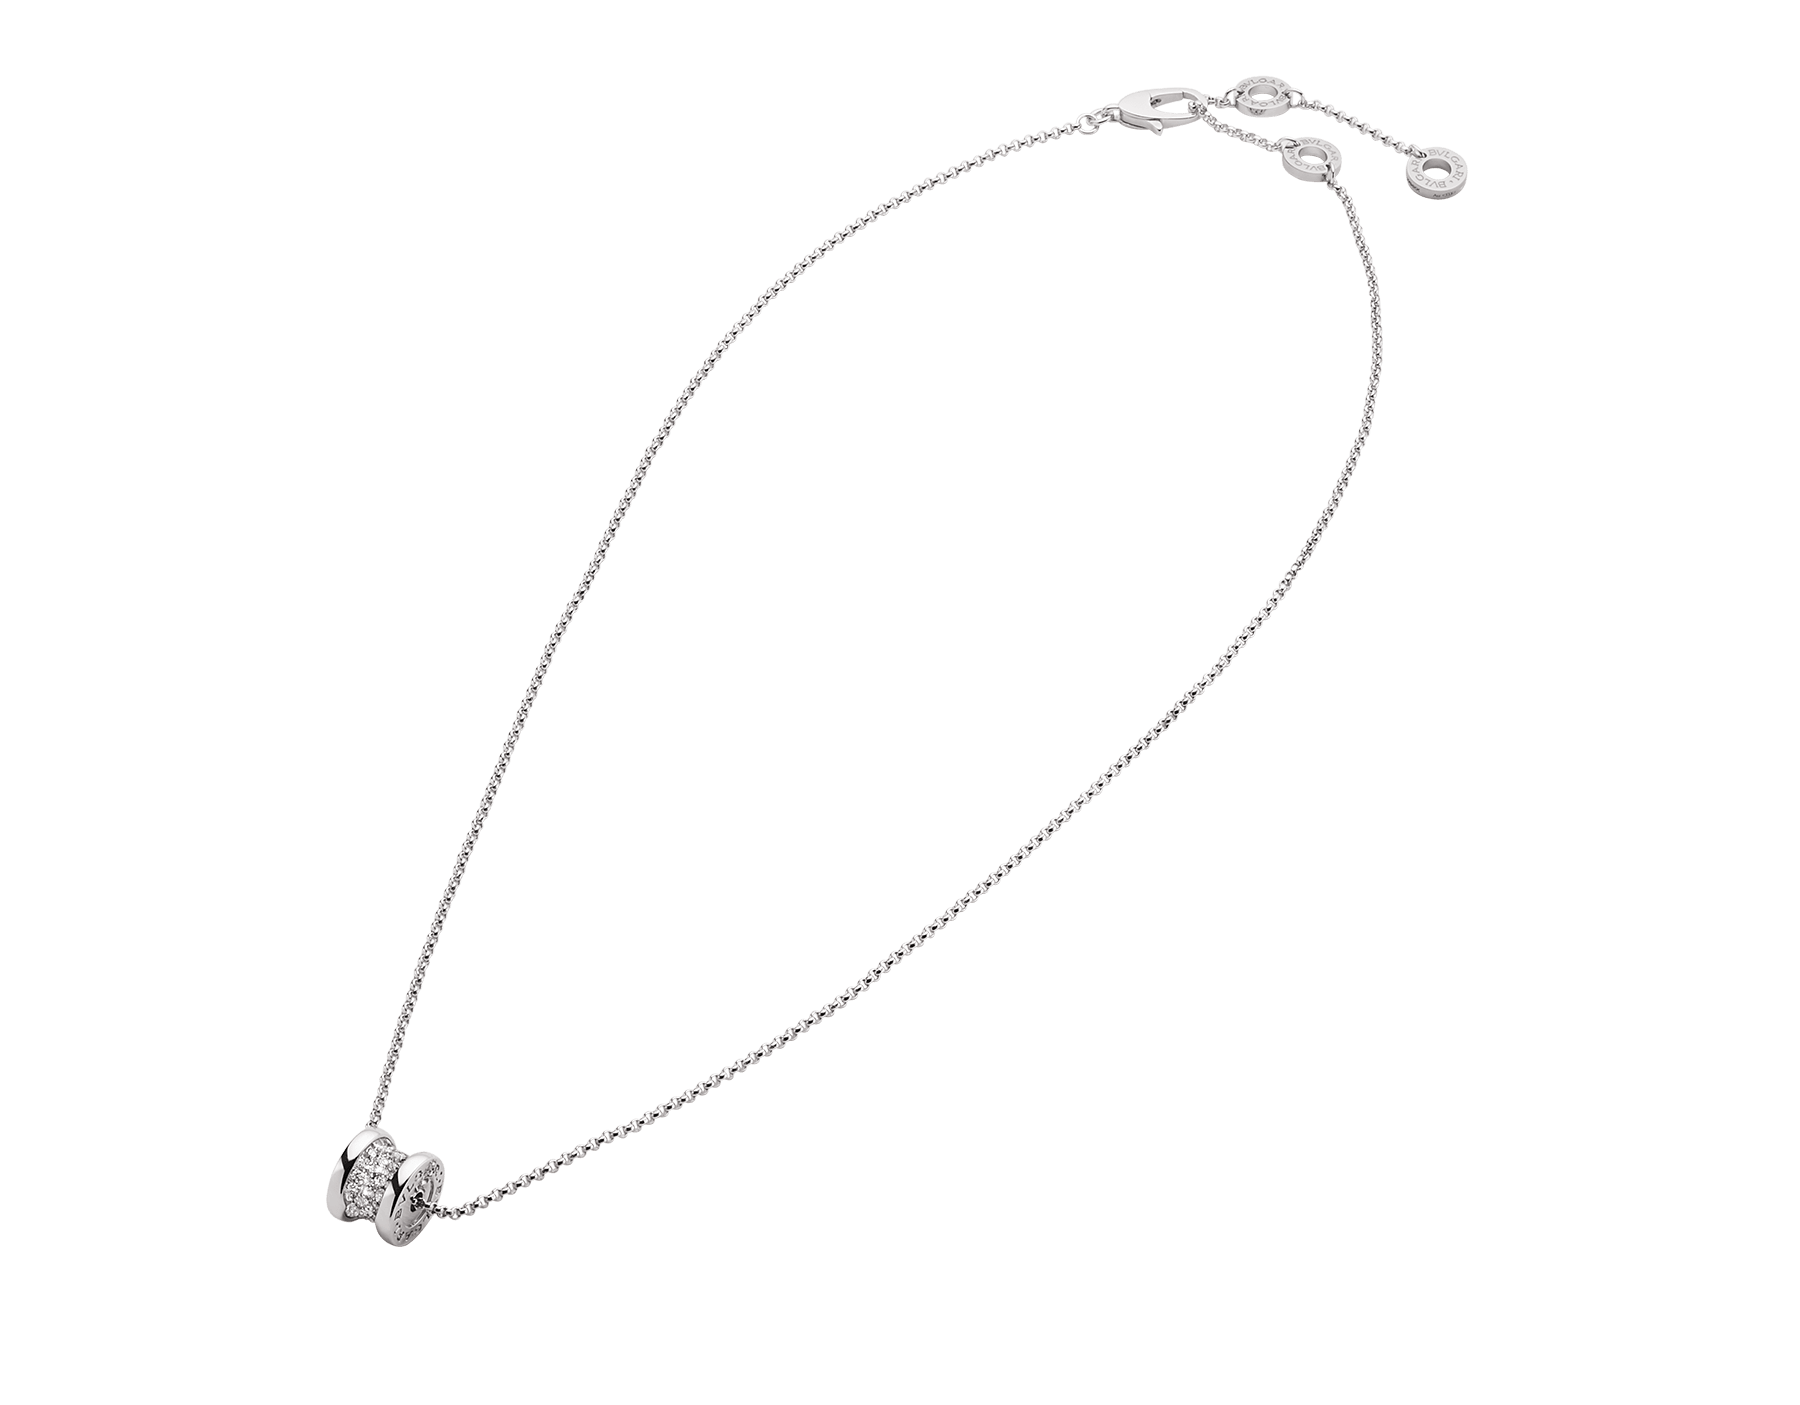 B.zero1 18 kt white gold necklace with round pendant in 18 kt white gold, set with pavé diamonds on the spiral. 351117 image 2